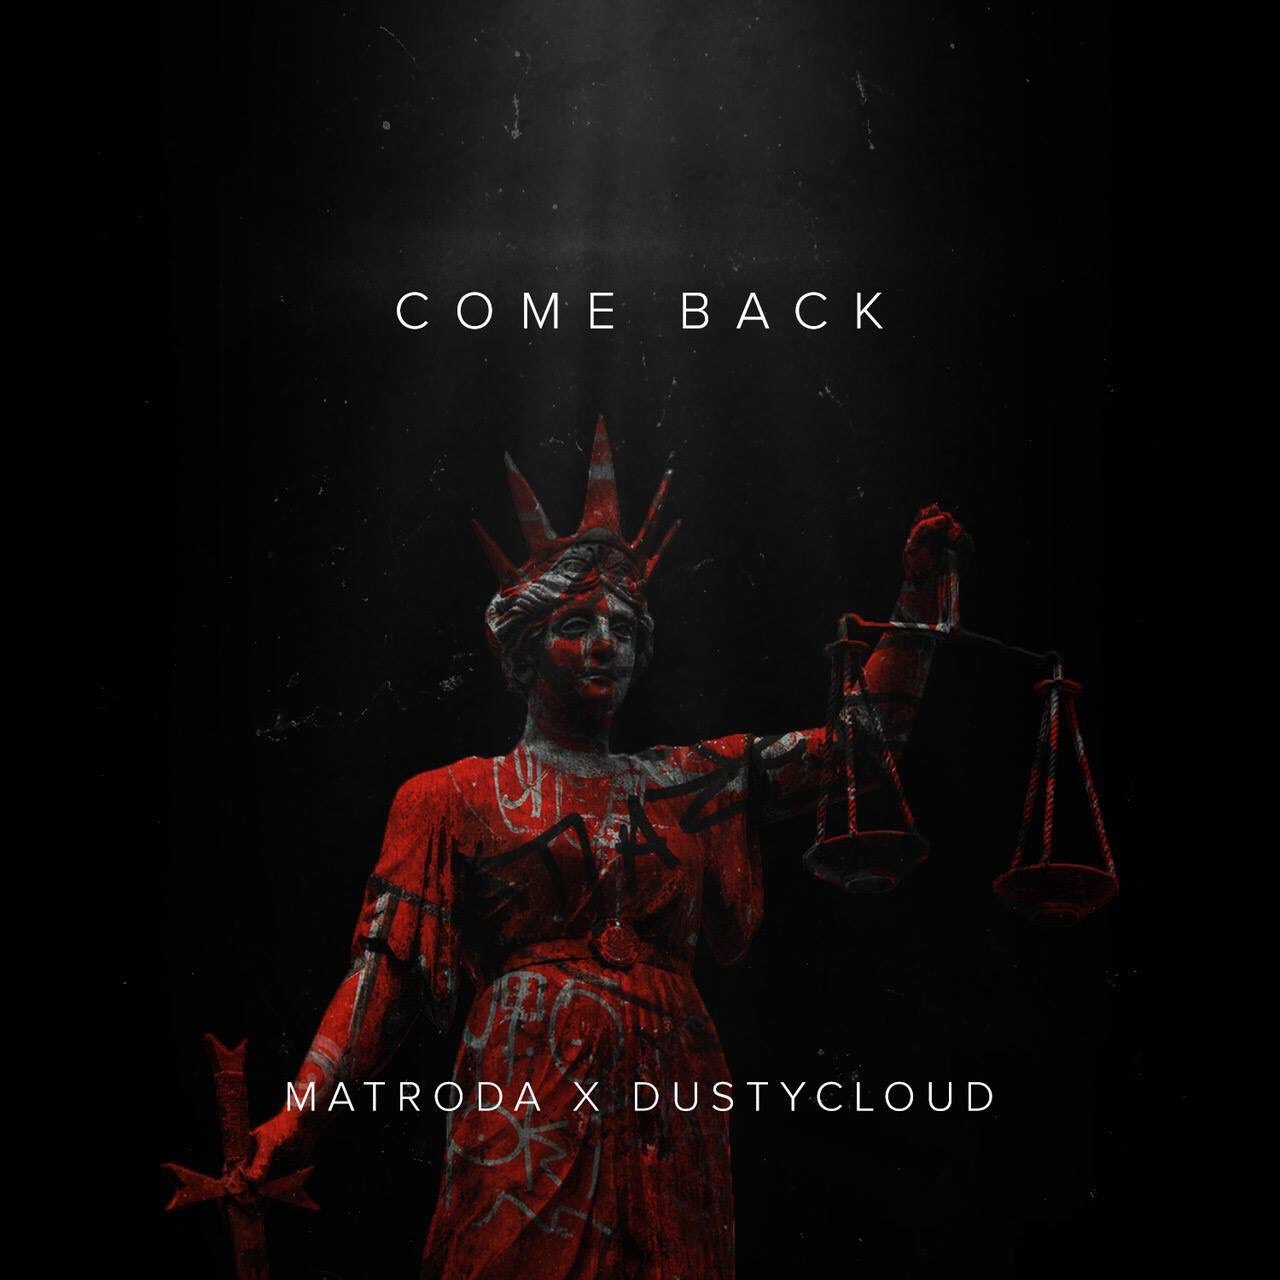 Matroda & Dustycloud - Come Back (Original Mix)